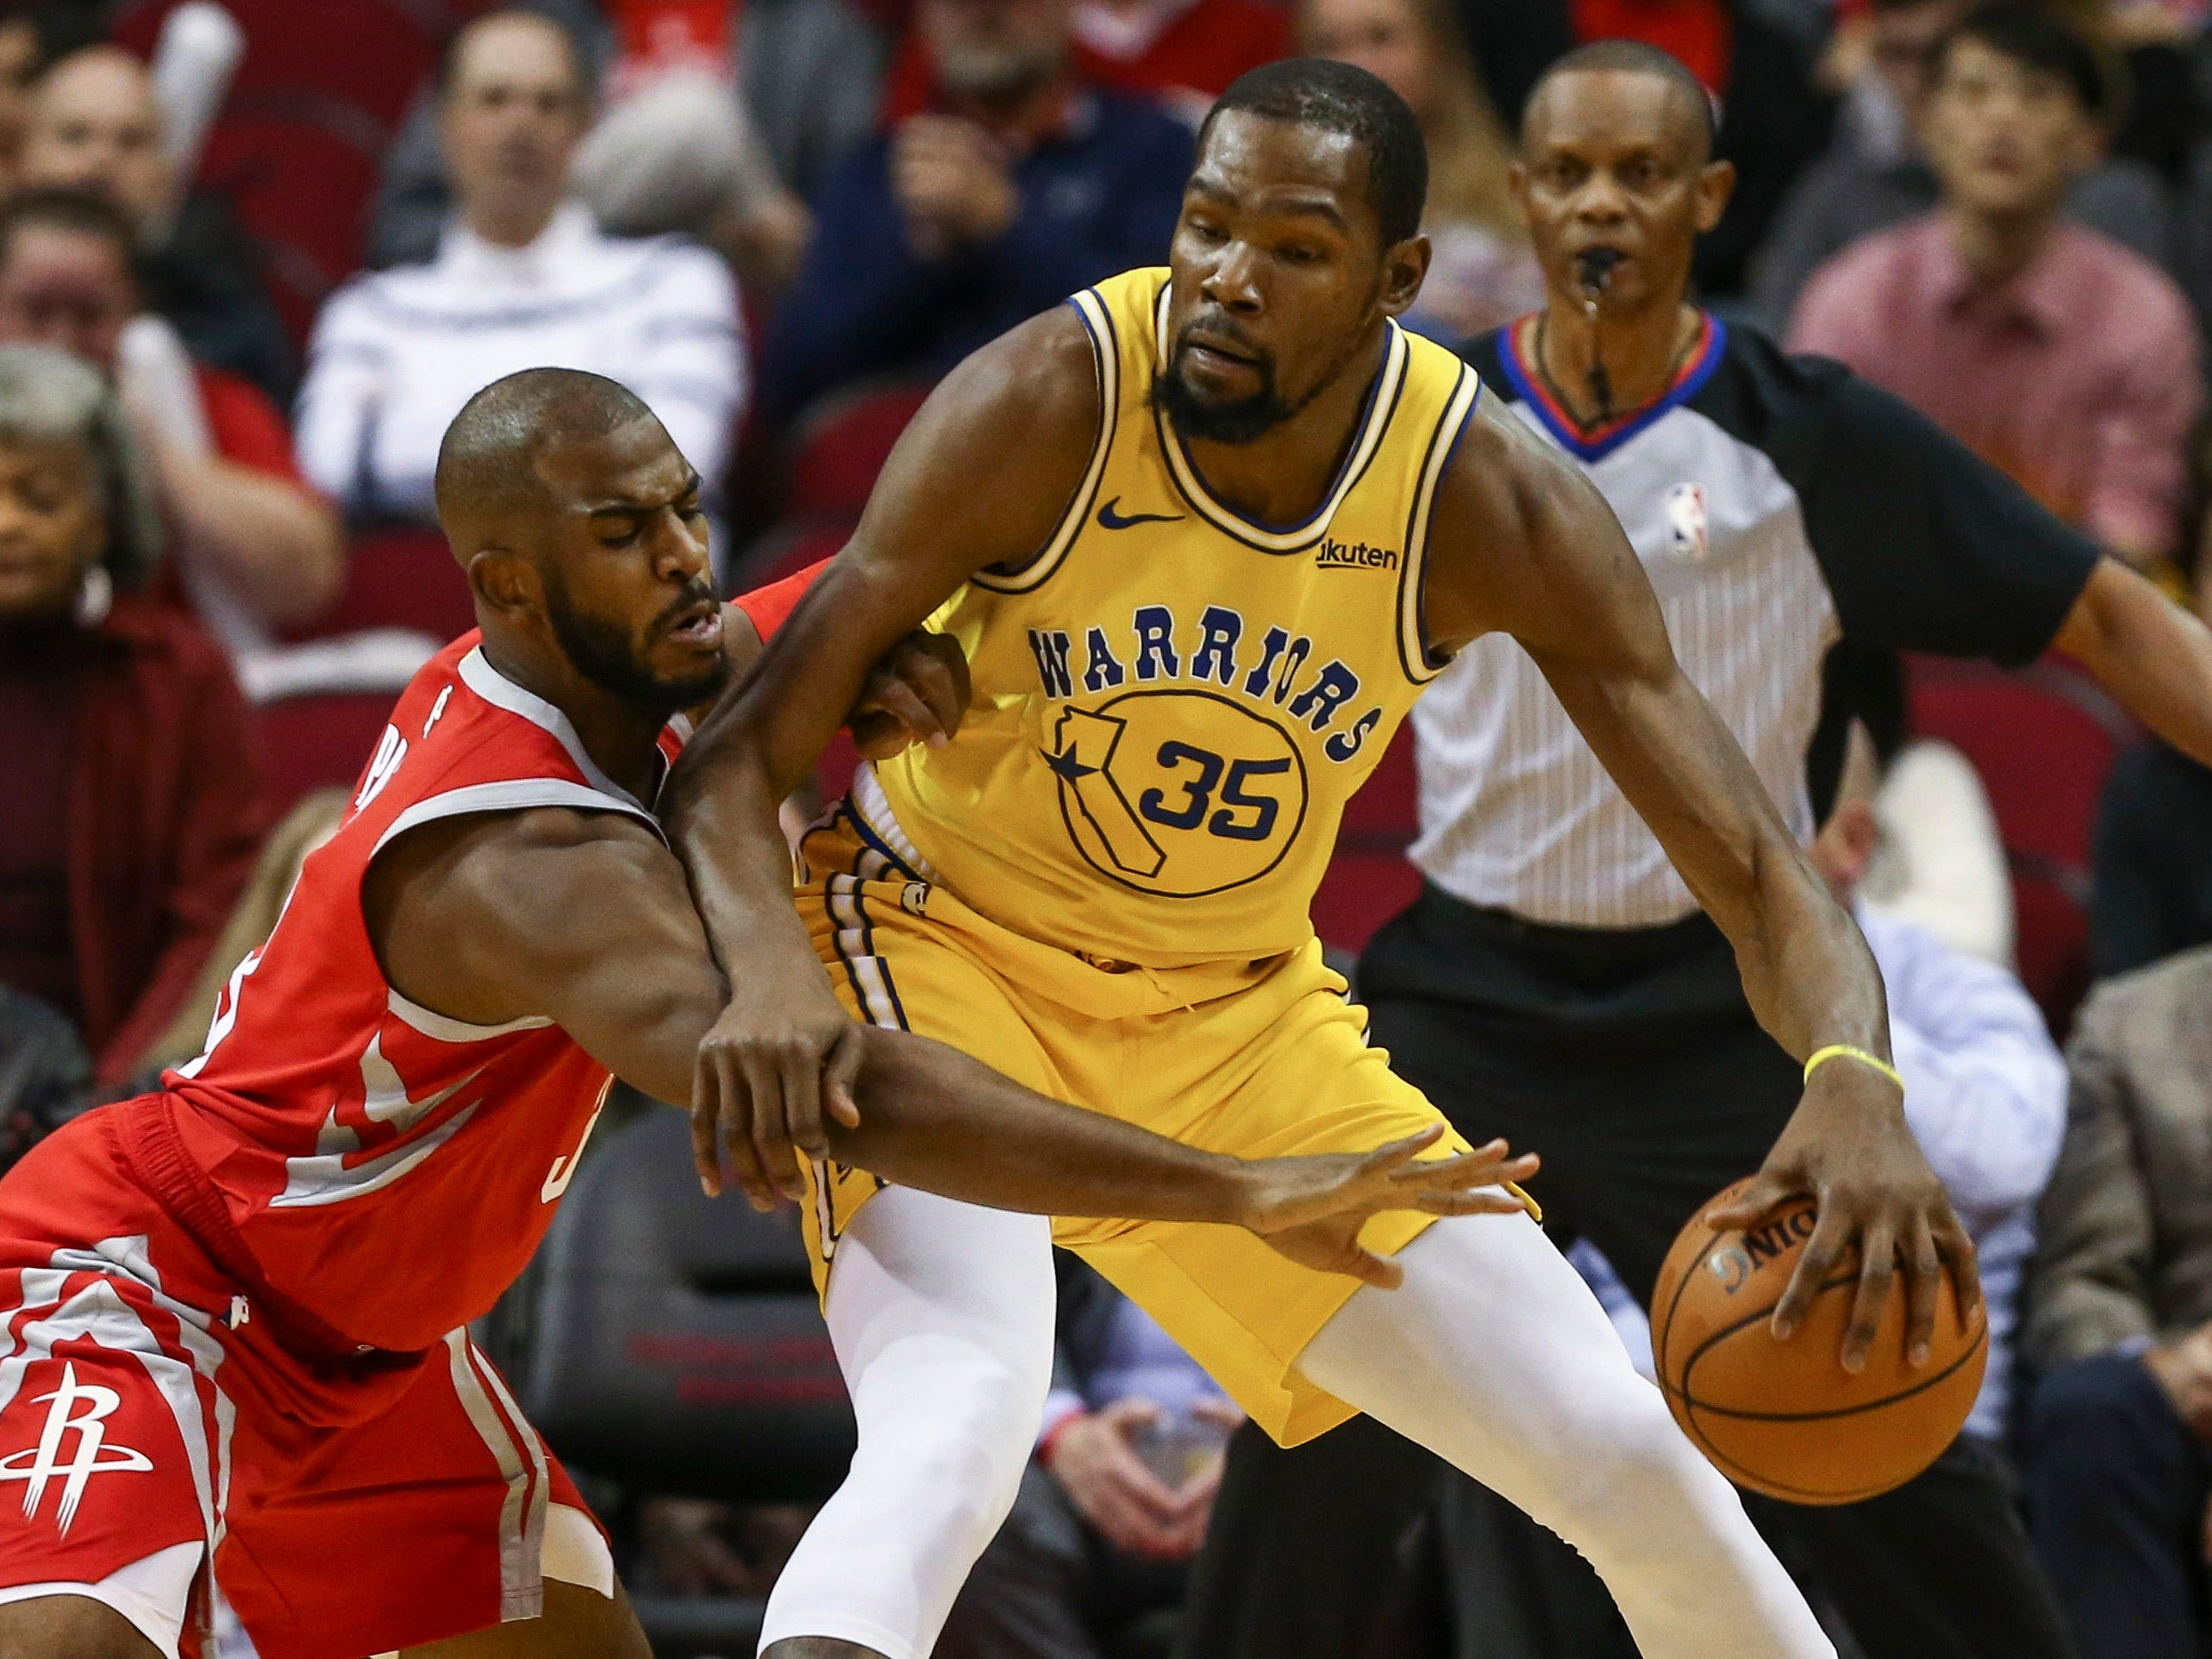 Nov. 15: Warriors forward Kevin Durant (35) tries to back down Rockets guard Chris Paul (3) during the first half in Houston.